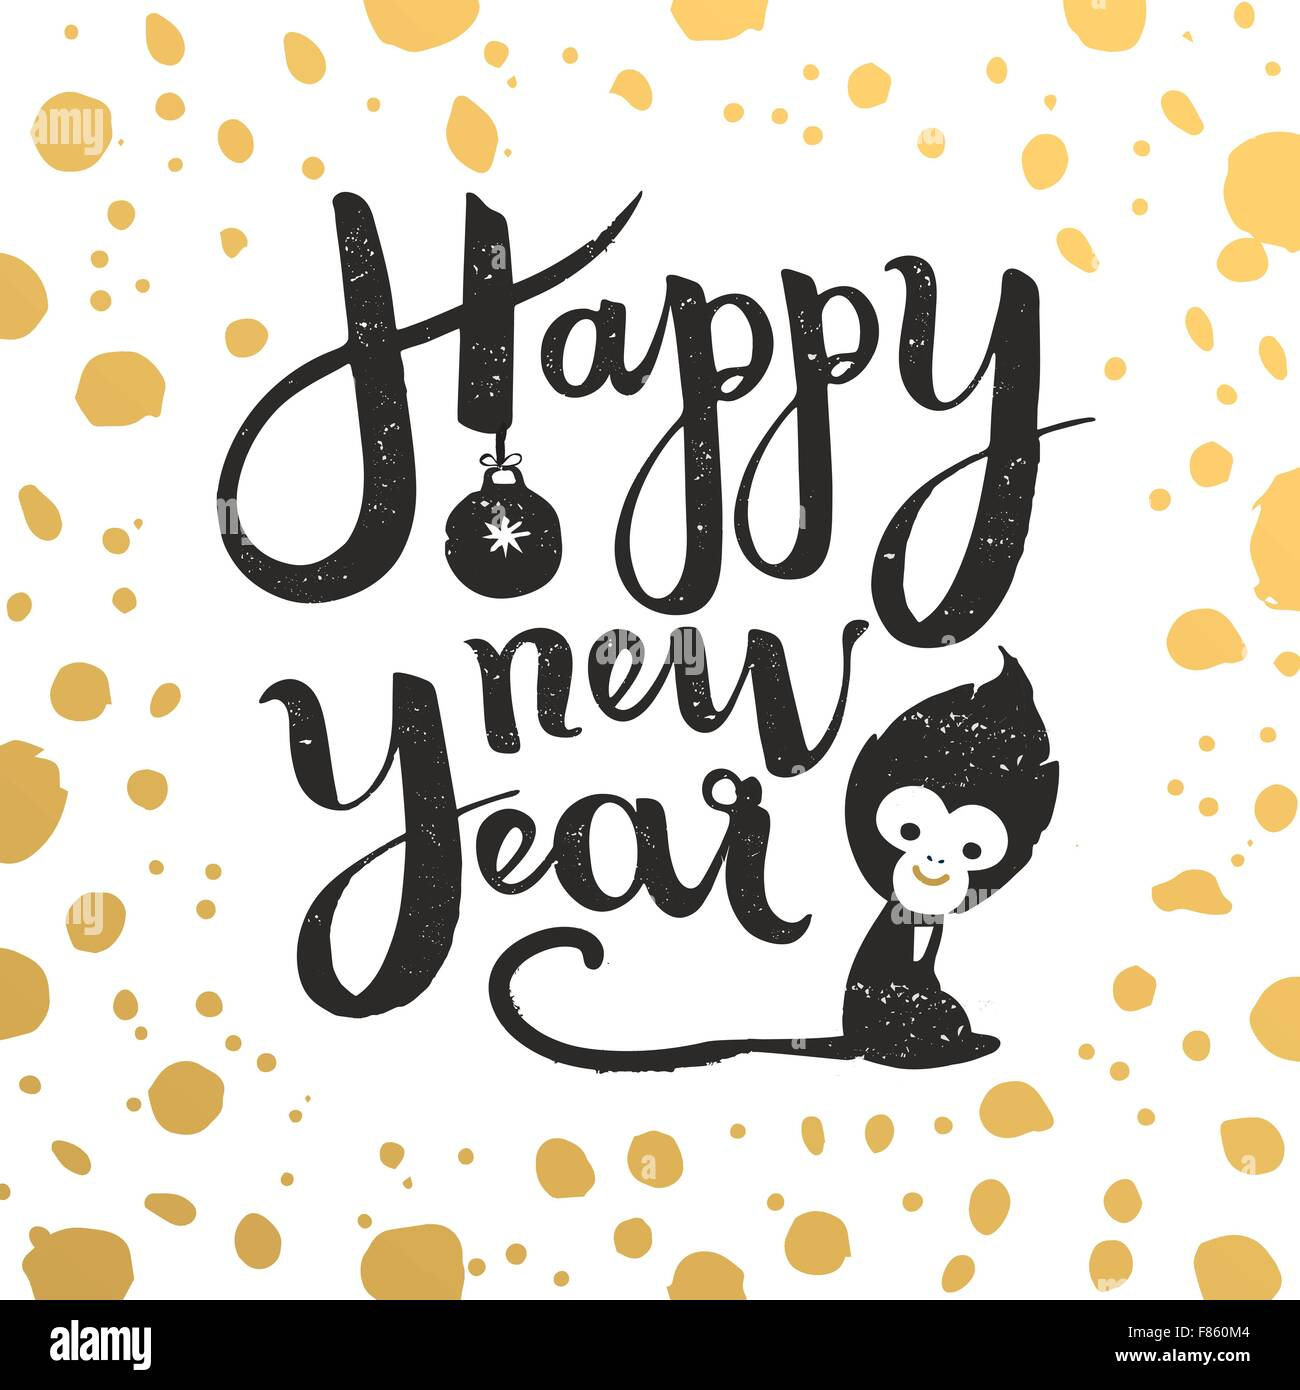 New Year Card Wishes Stockfotos & New Year Card Wishes Bilder - Alamy